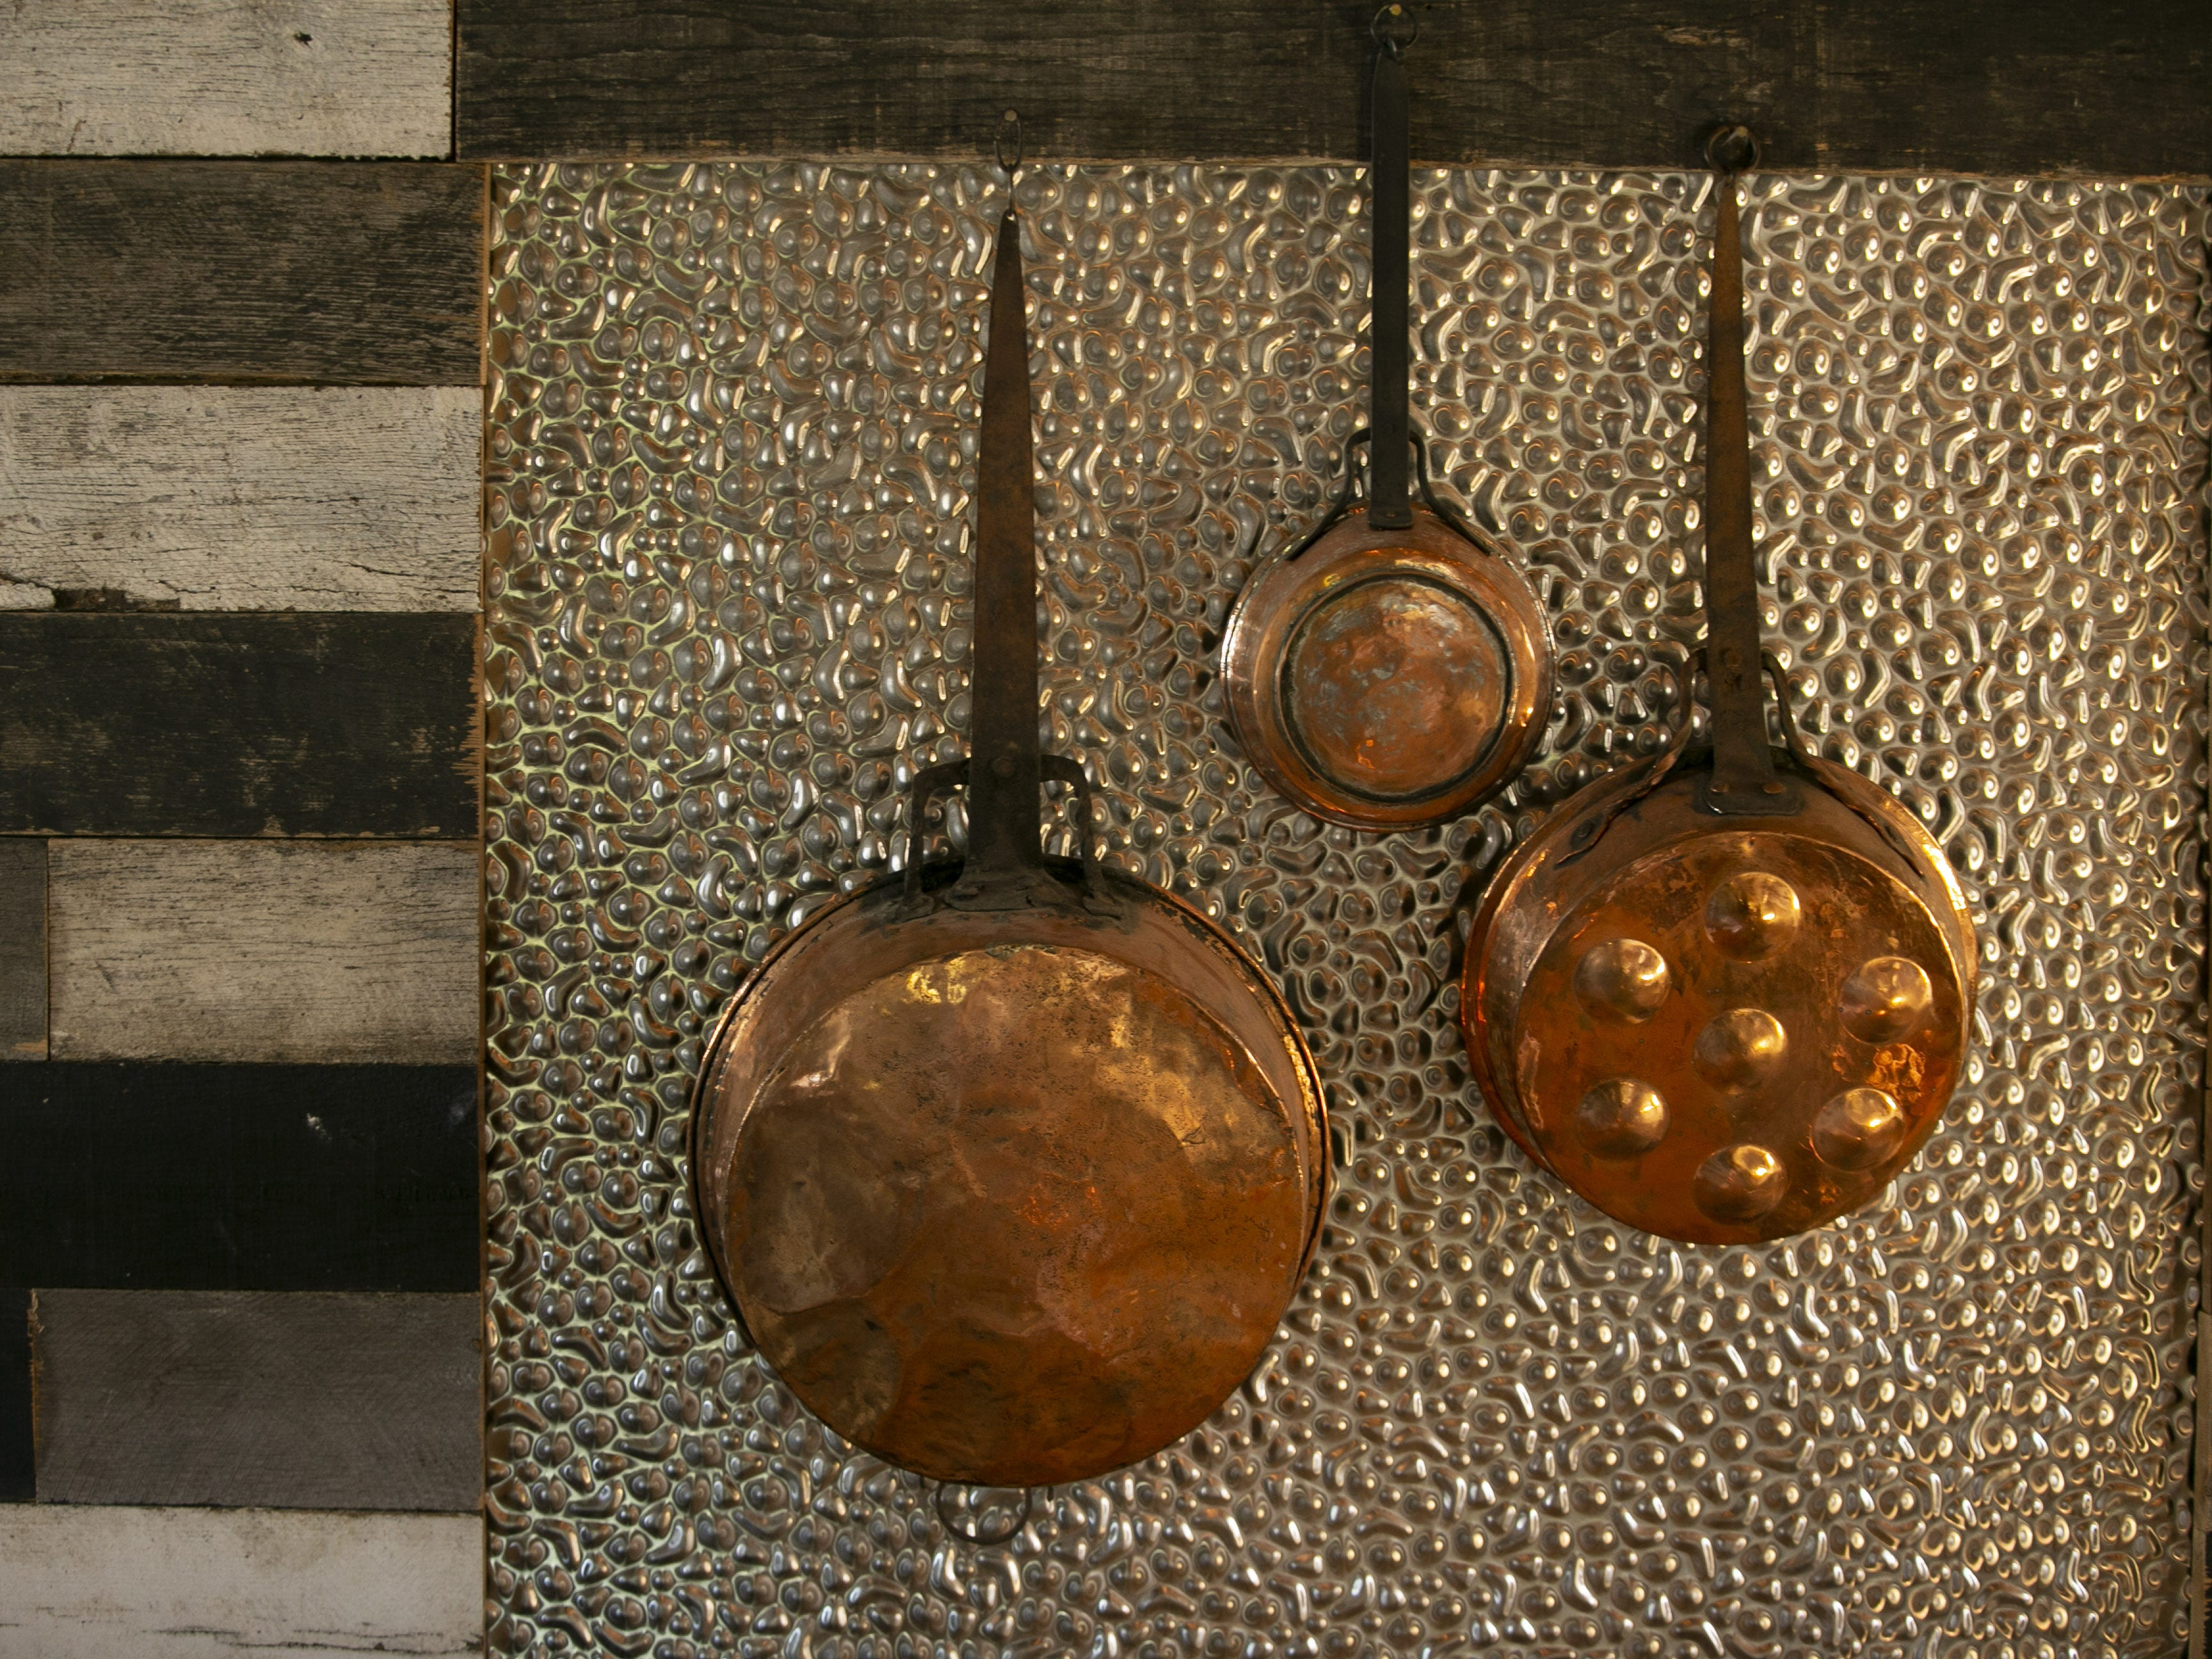 Copper pots hang on the wall at Bri restaurant in Phoenix on Nov. 12, 2018.